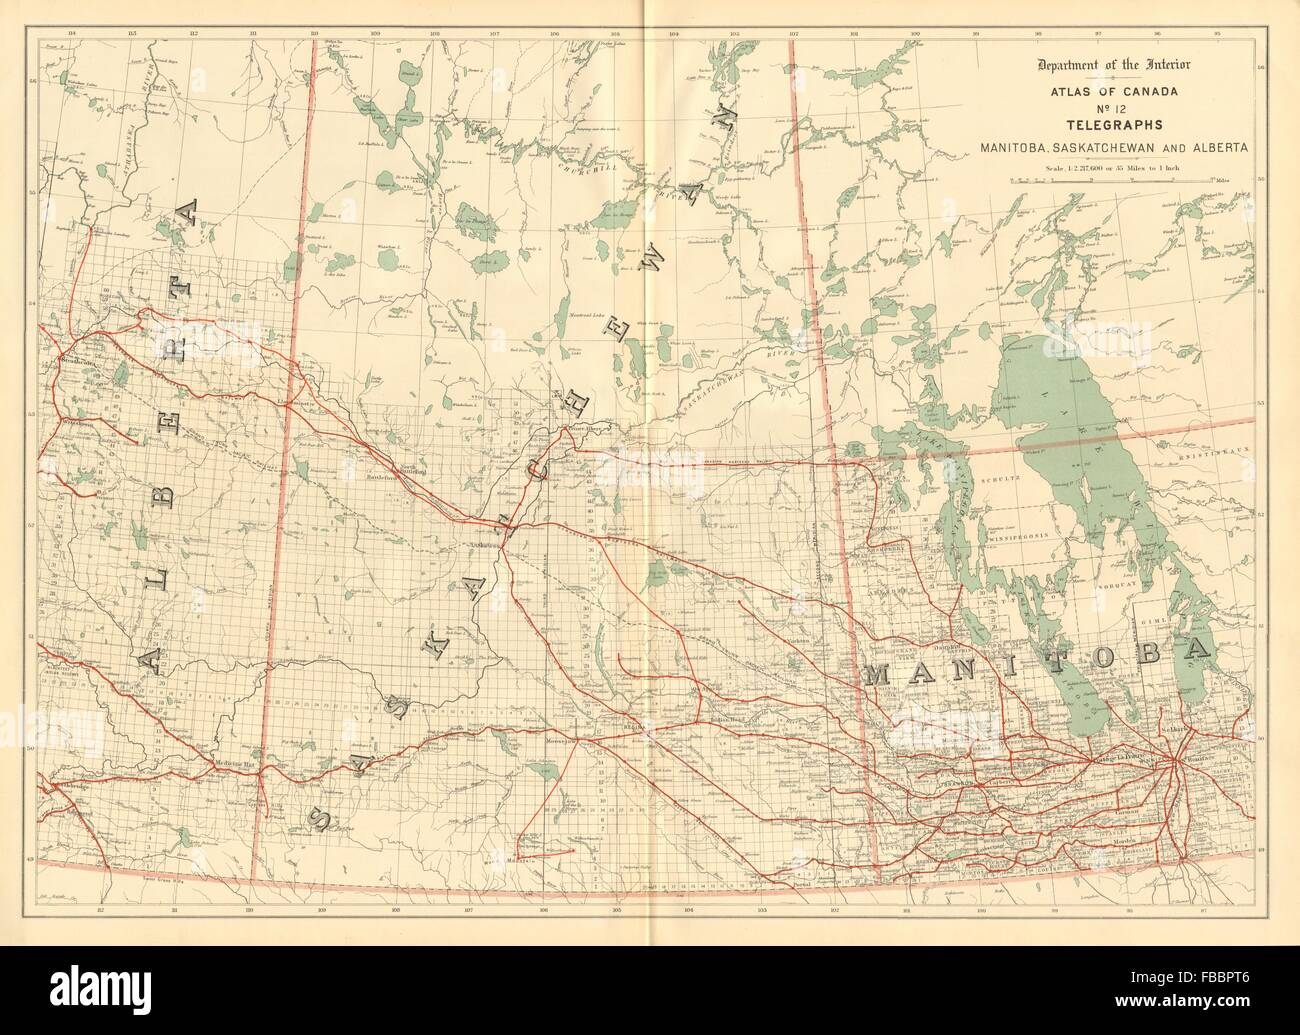 Manitoba saskatchewan and alberta telegraph cables canada white manitoba saskatchewan and alberta telegraph cables canada white 1906 map gumiabroncs